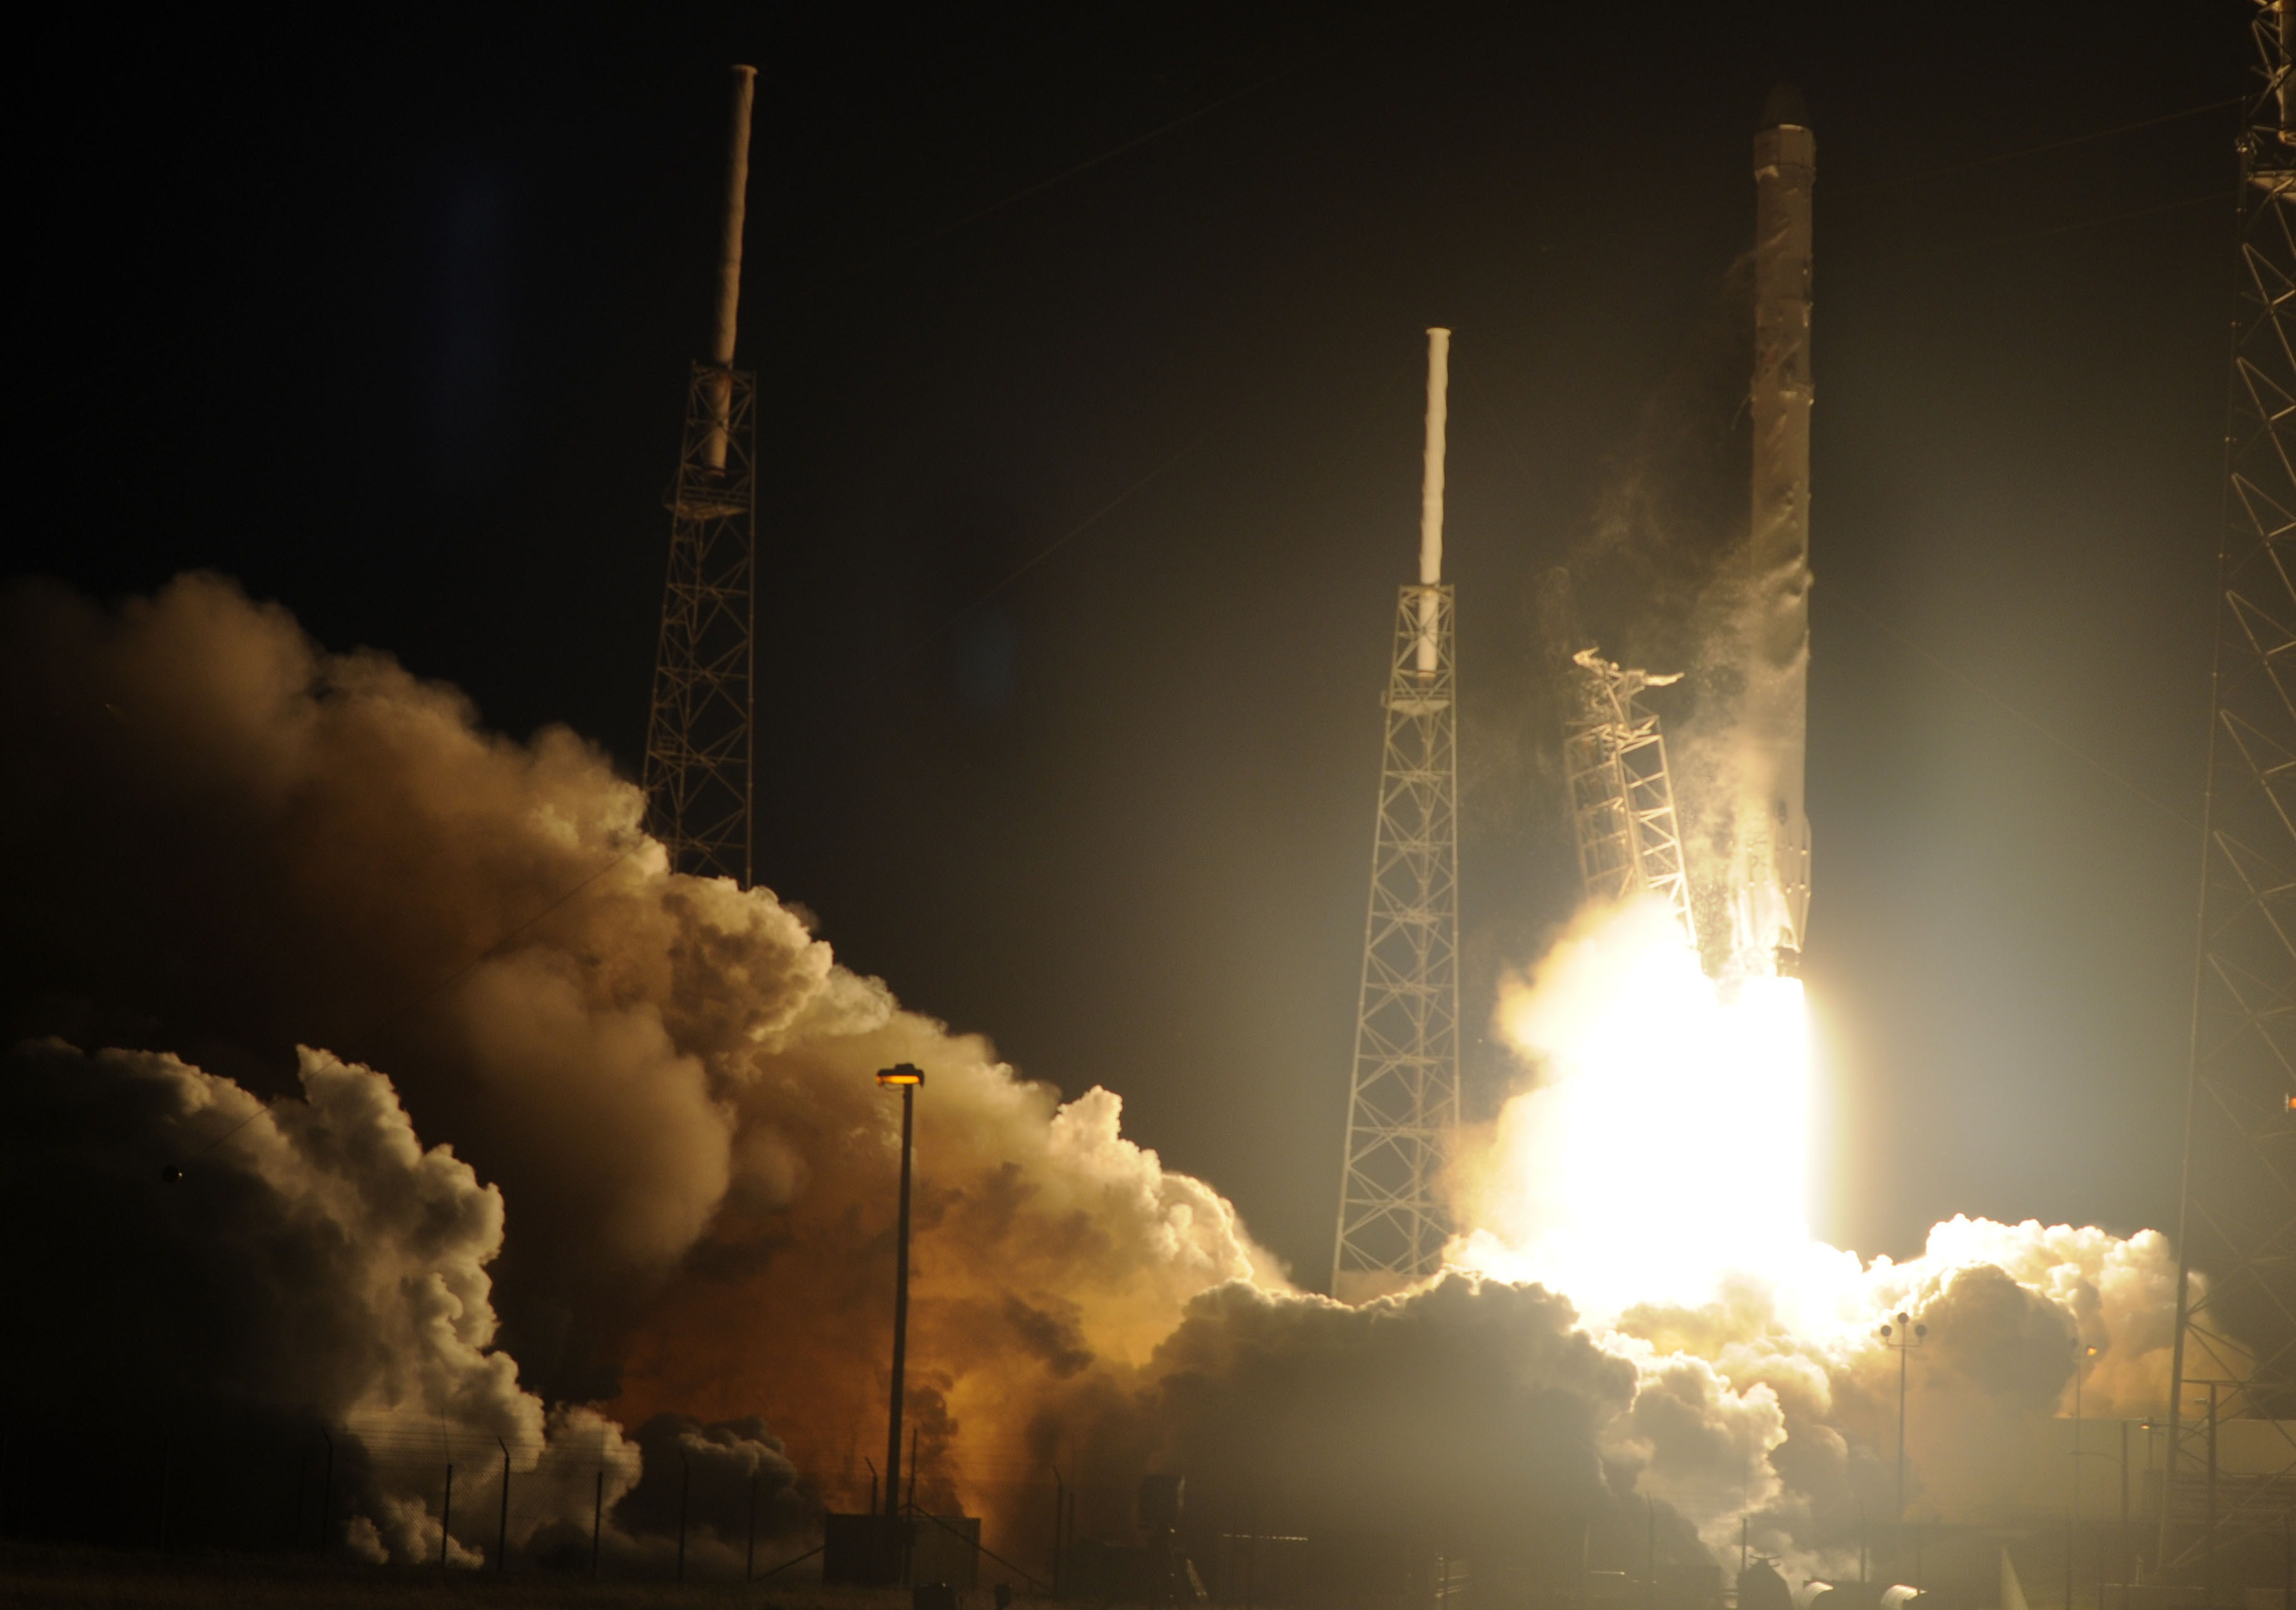 spacex falcon 9 rocket launch failure video of rocket breaking into pieces after anomaly ascent